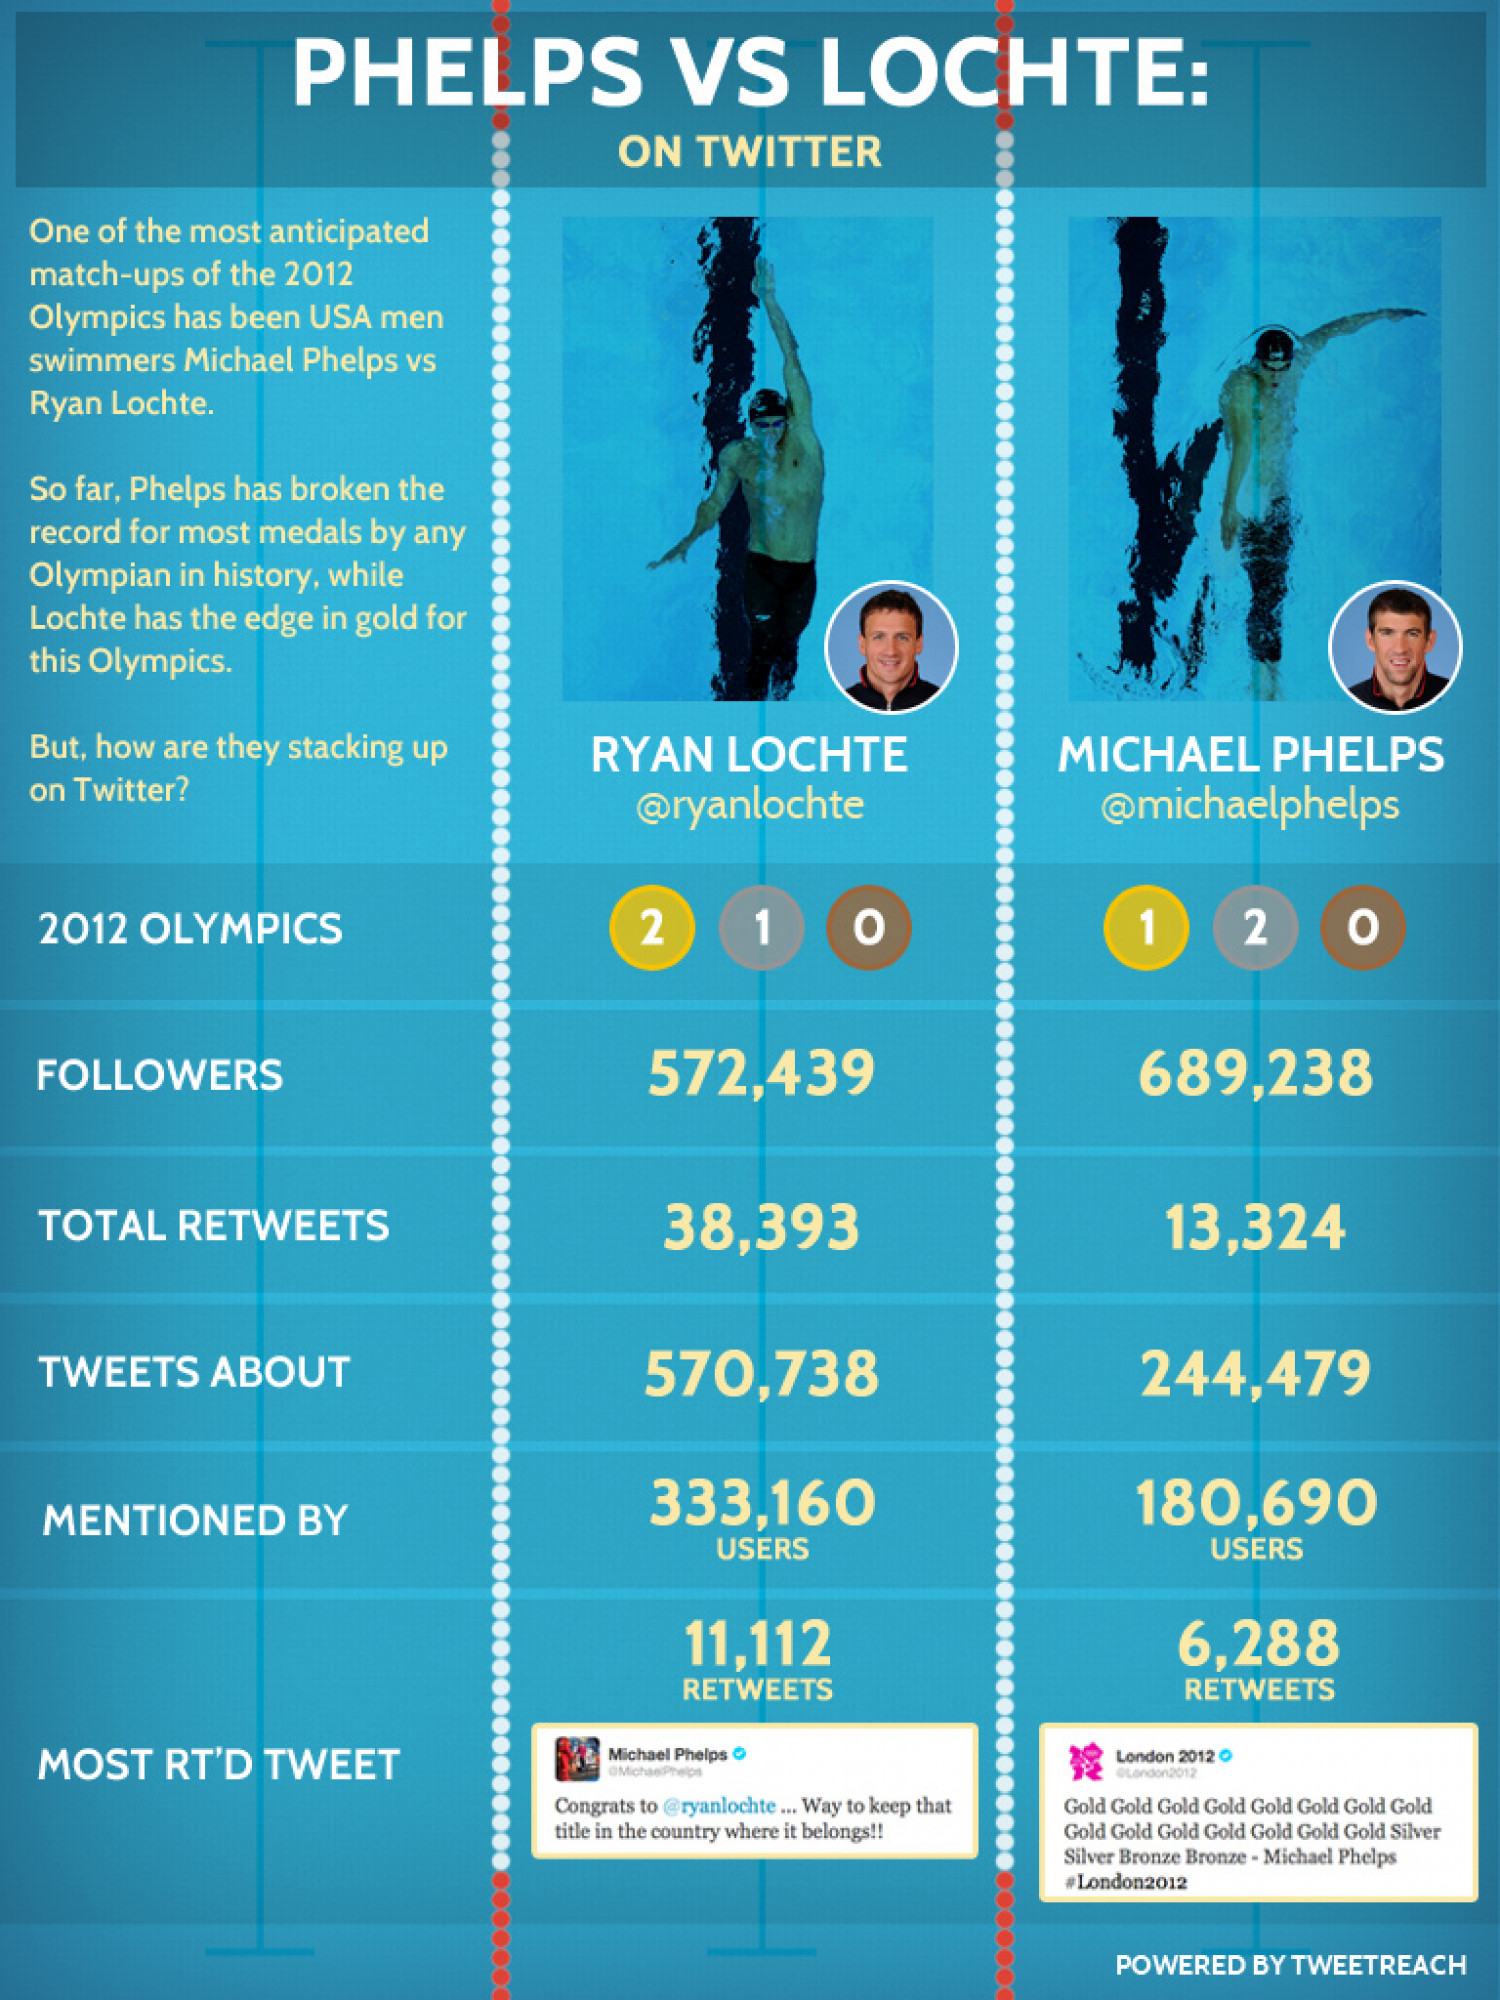 Phelps vs. Lochte on Twitter Infographic